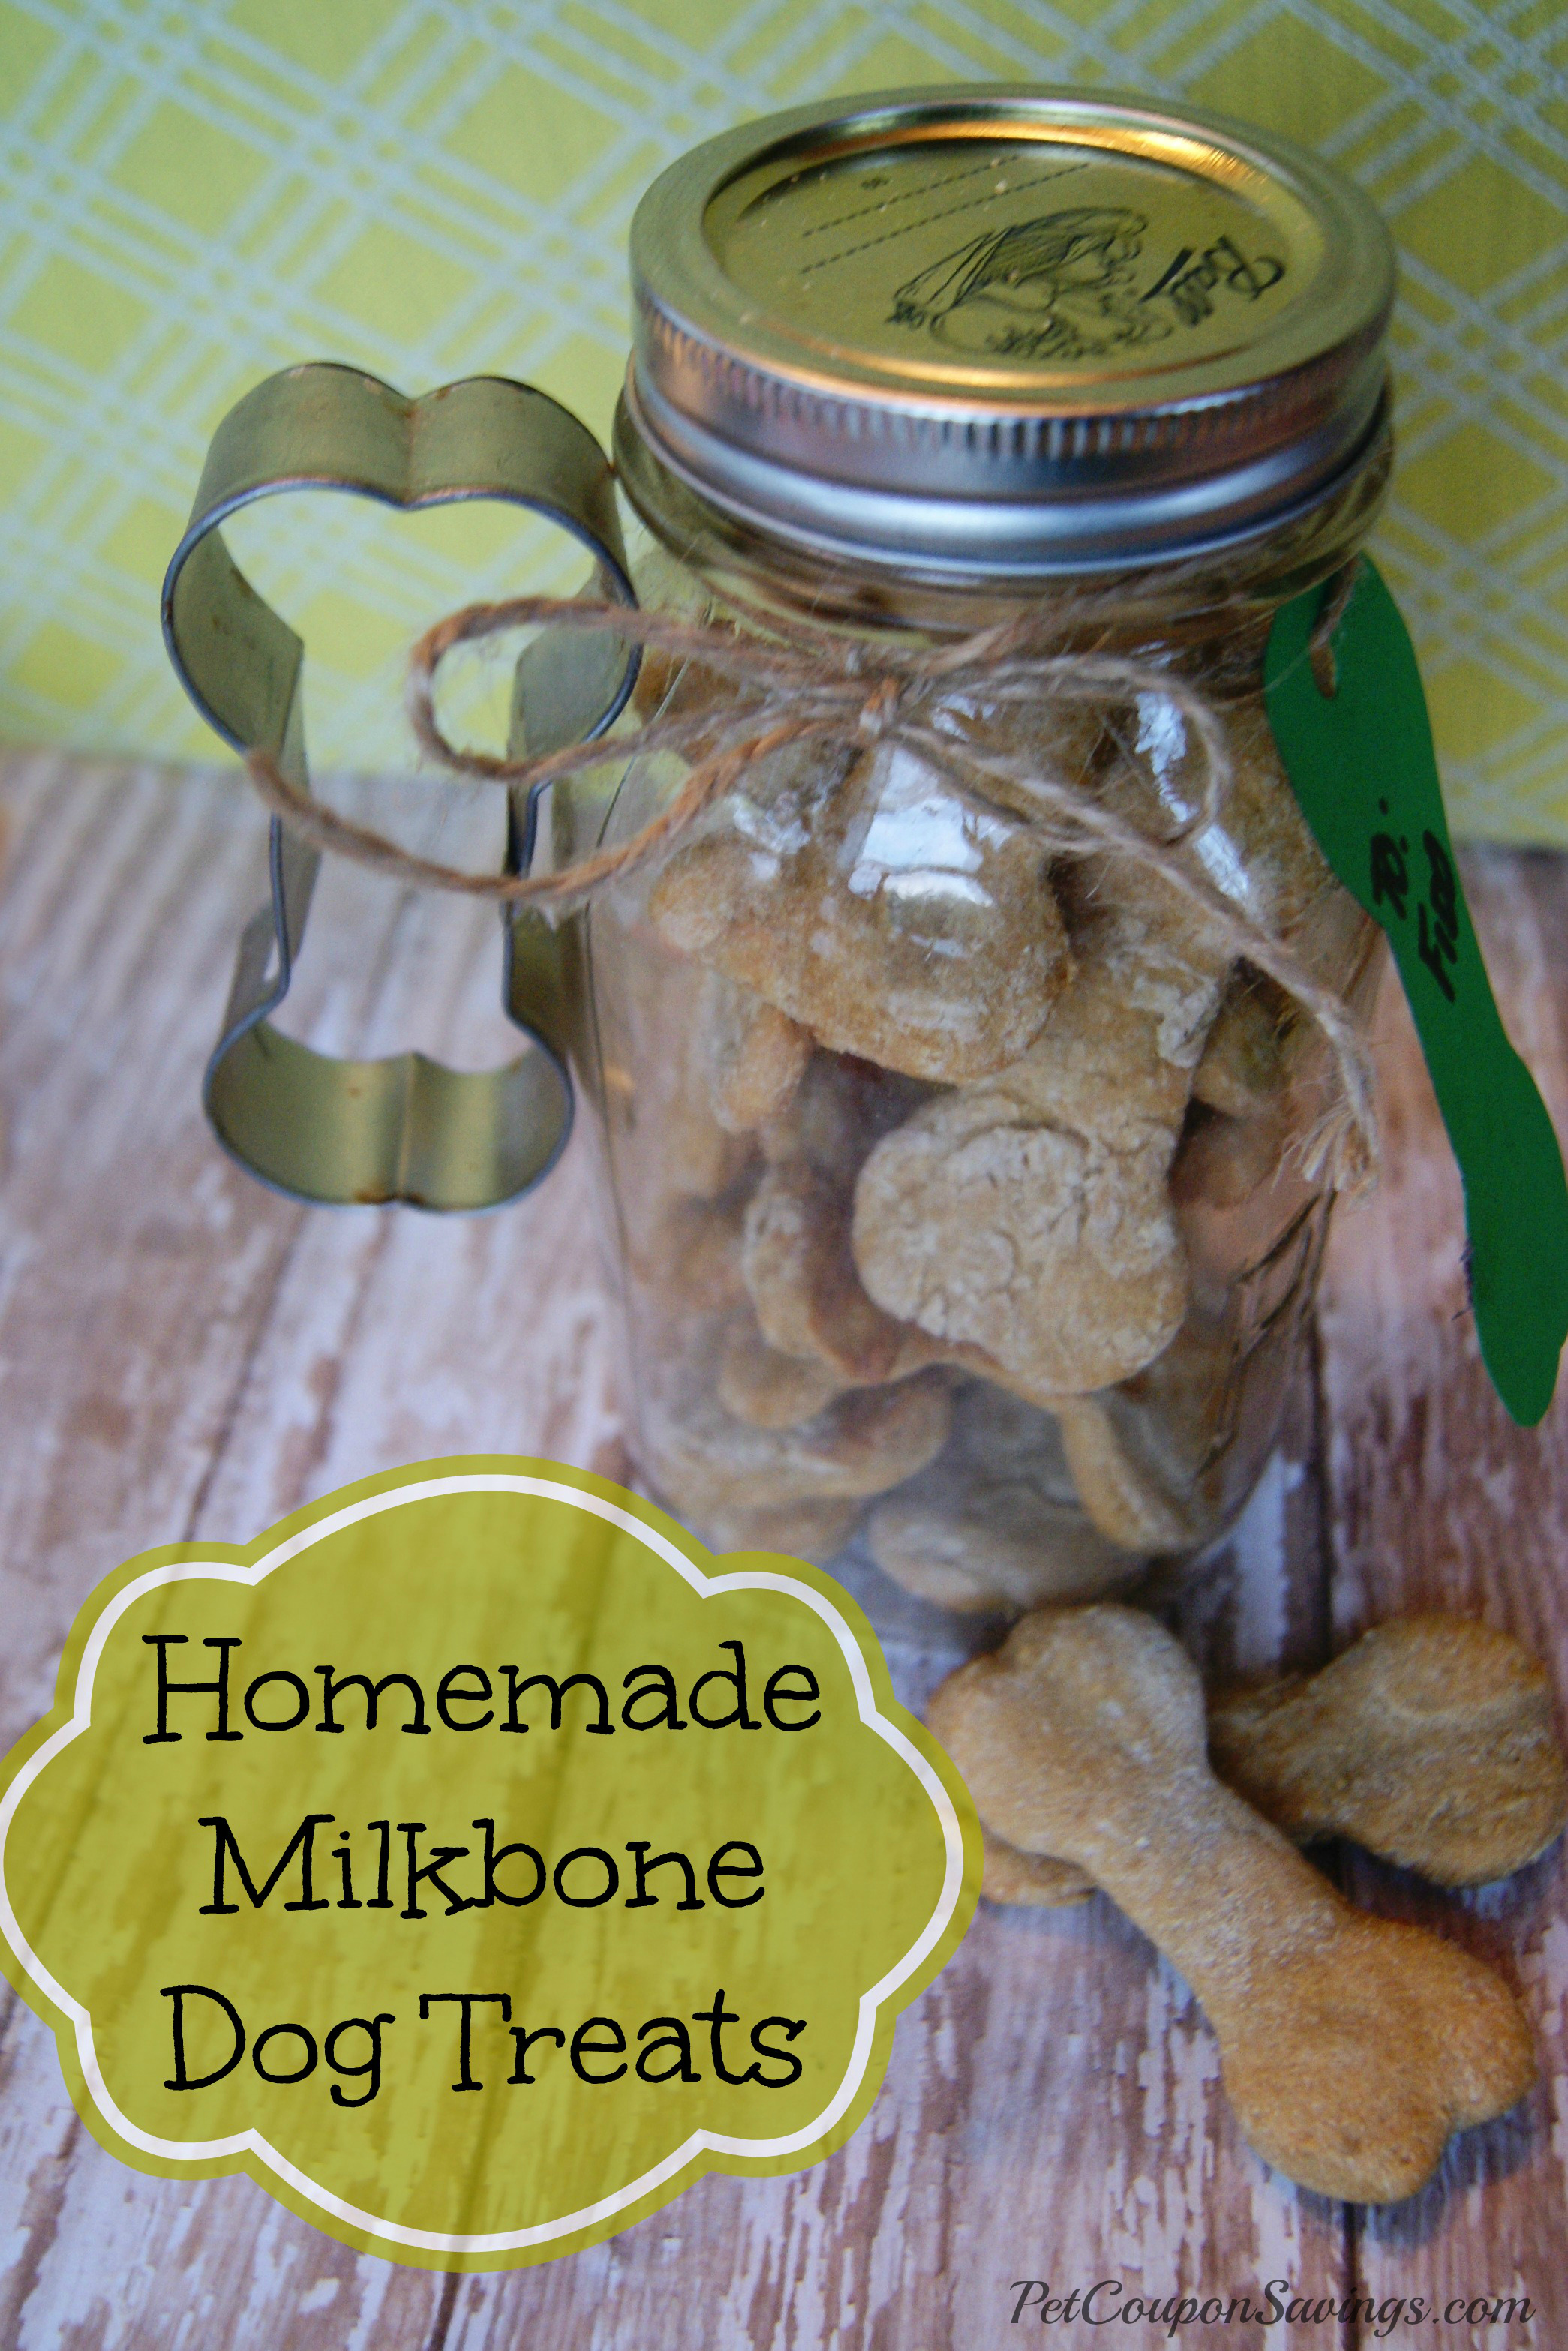 Homemade Milk Bone Dog Treats